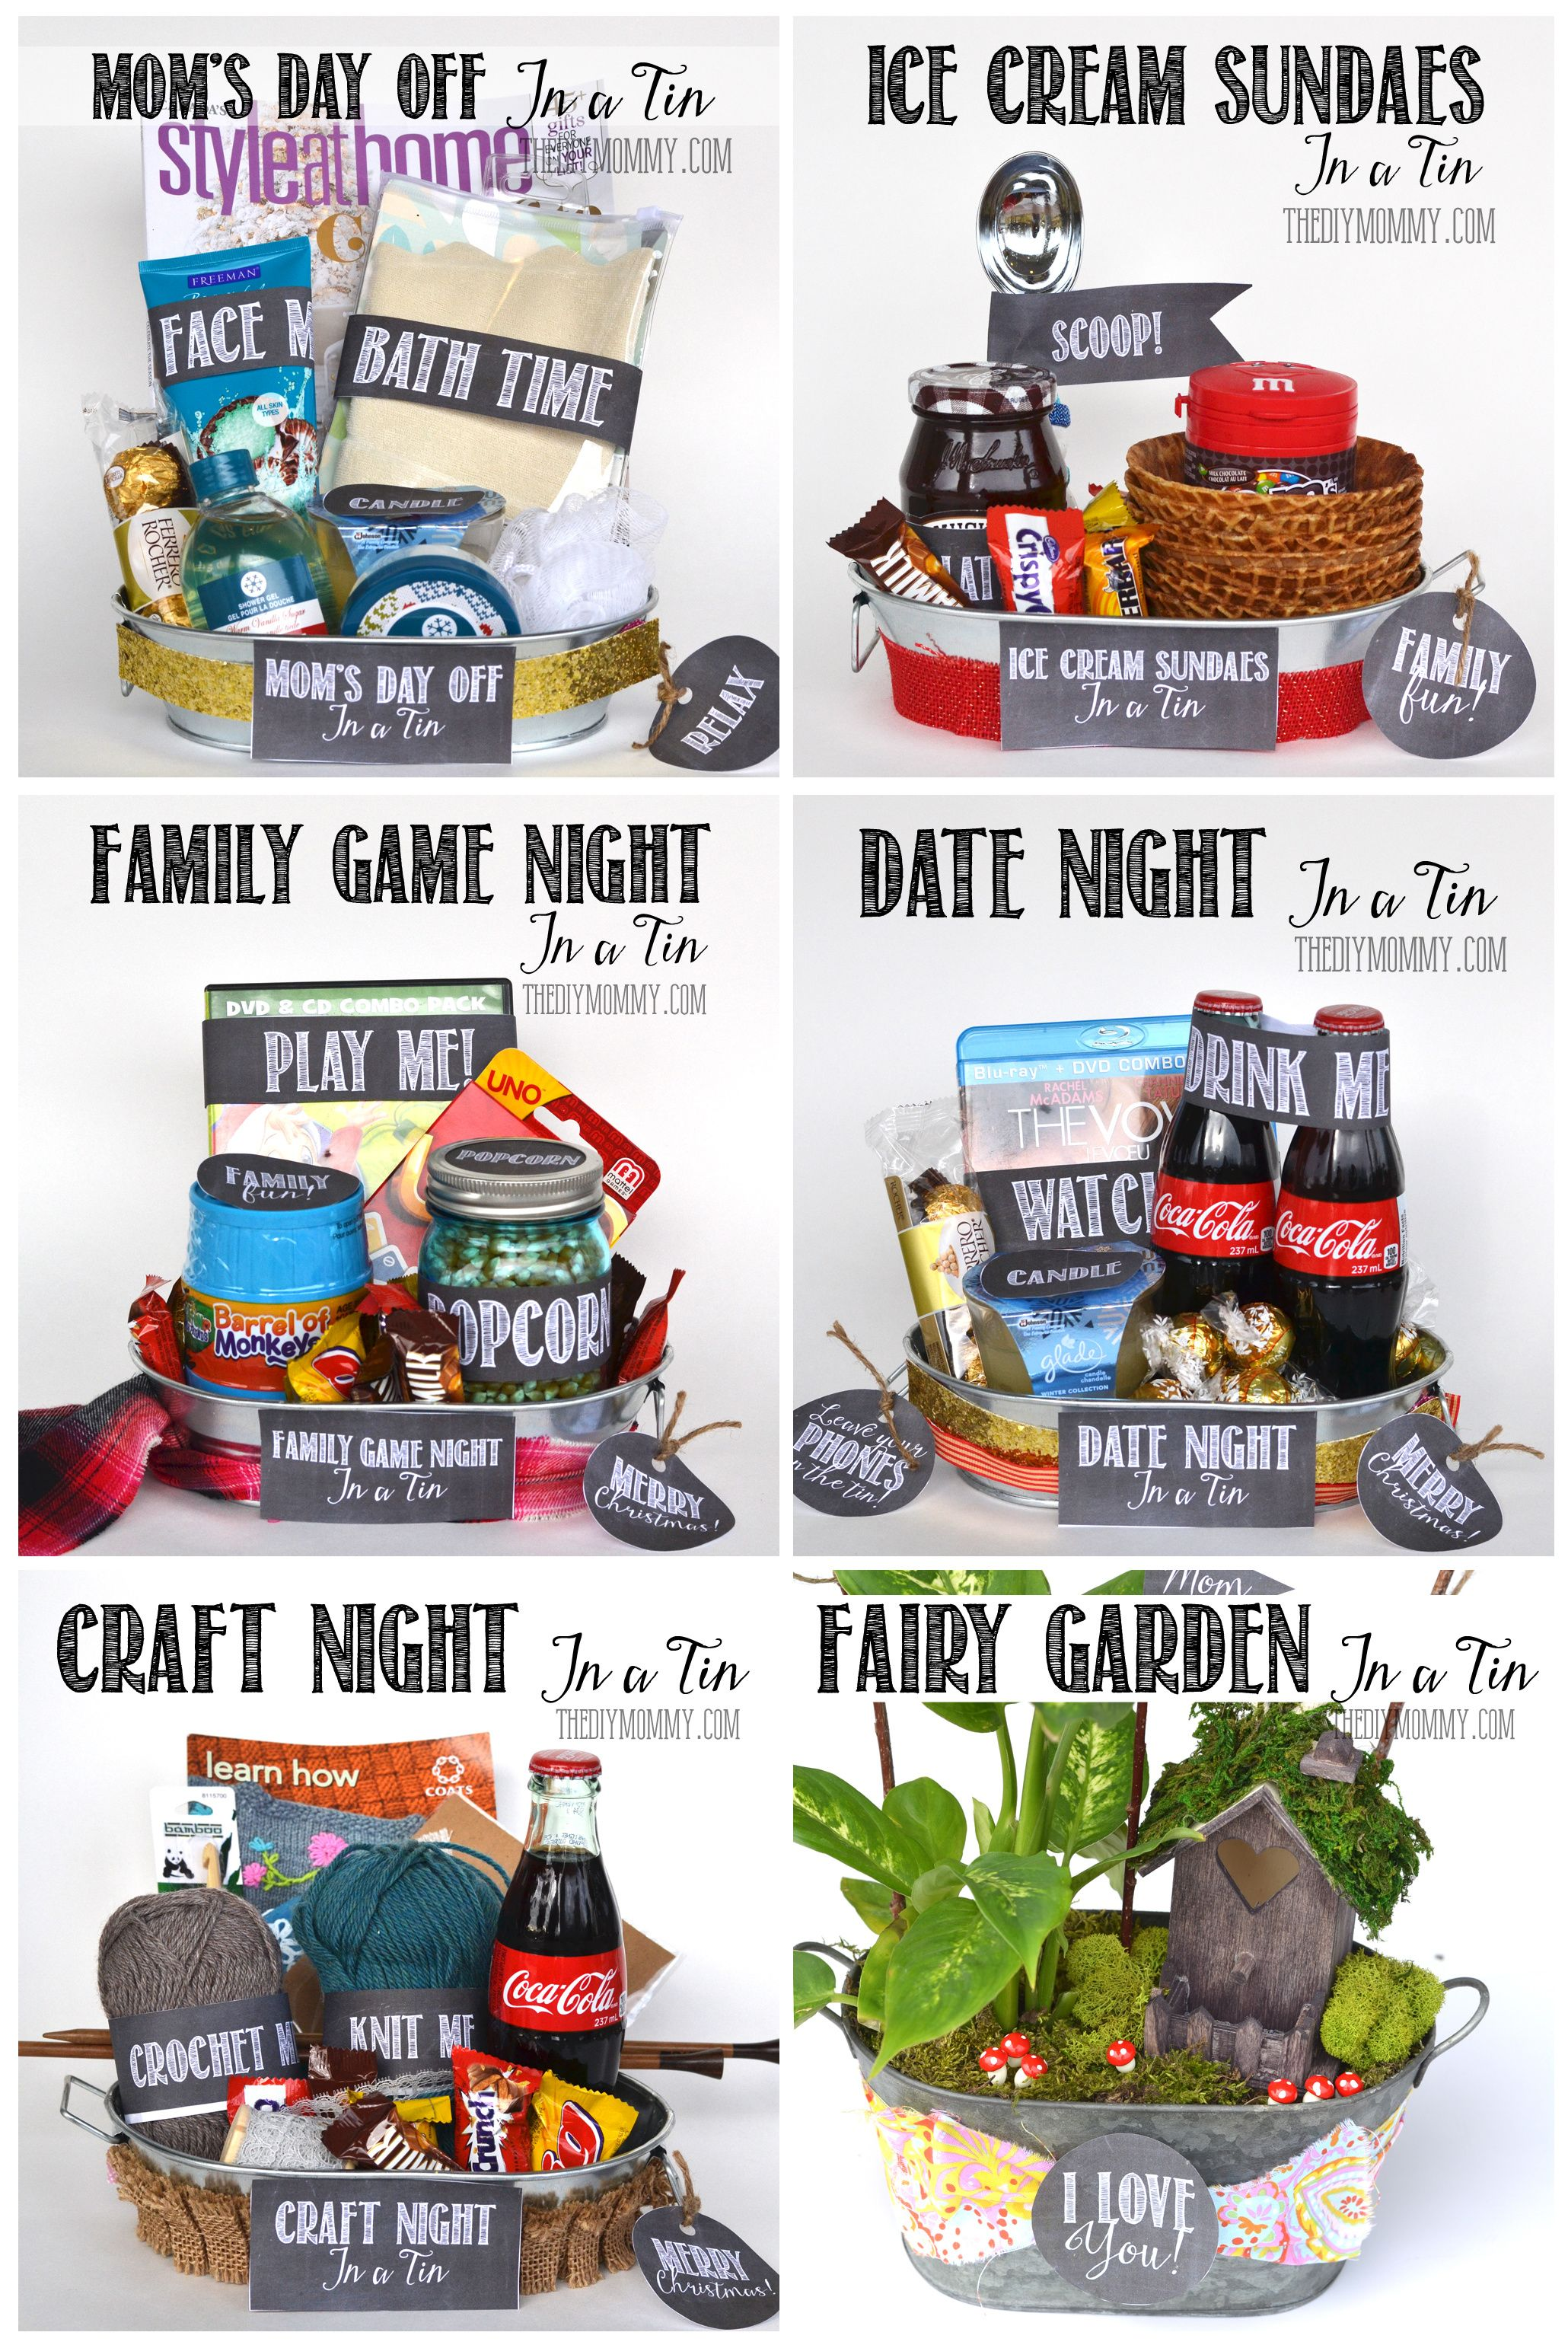 A Gift in a Tin: Craft Night in a Tin | The DIY Mommy